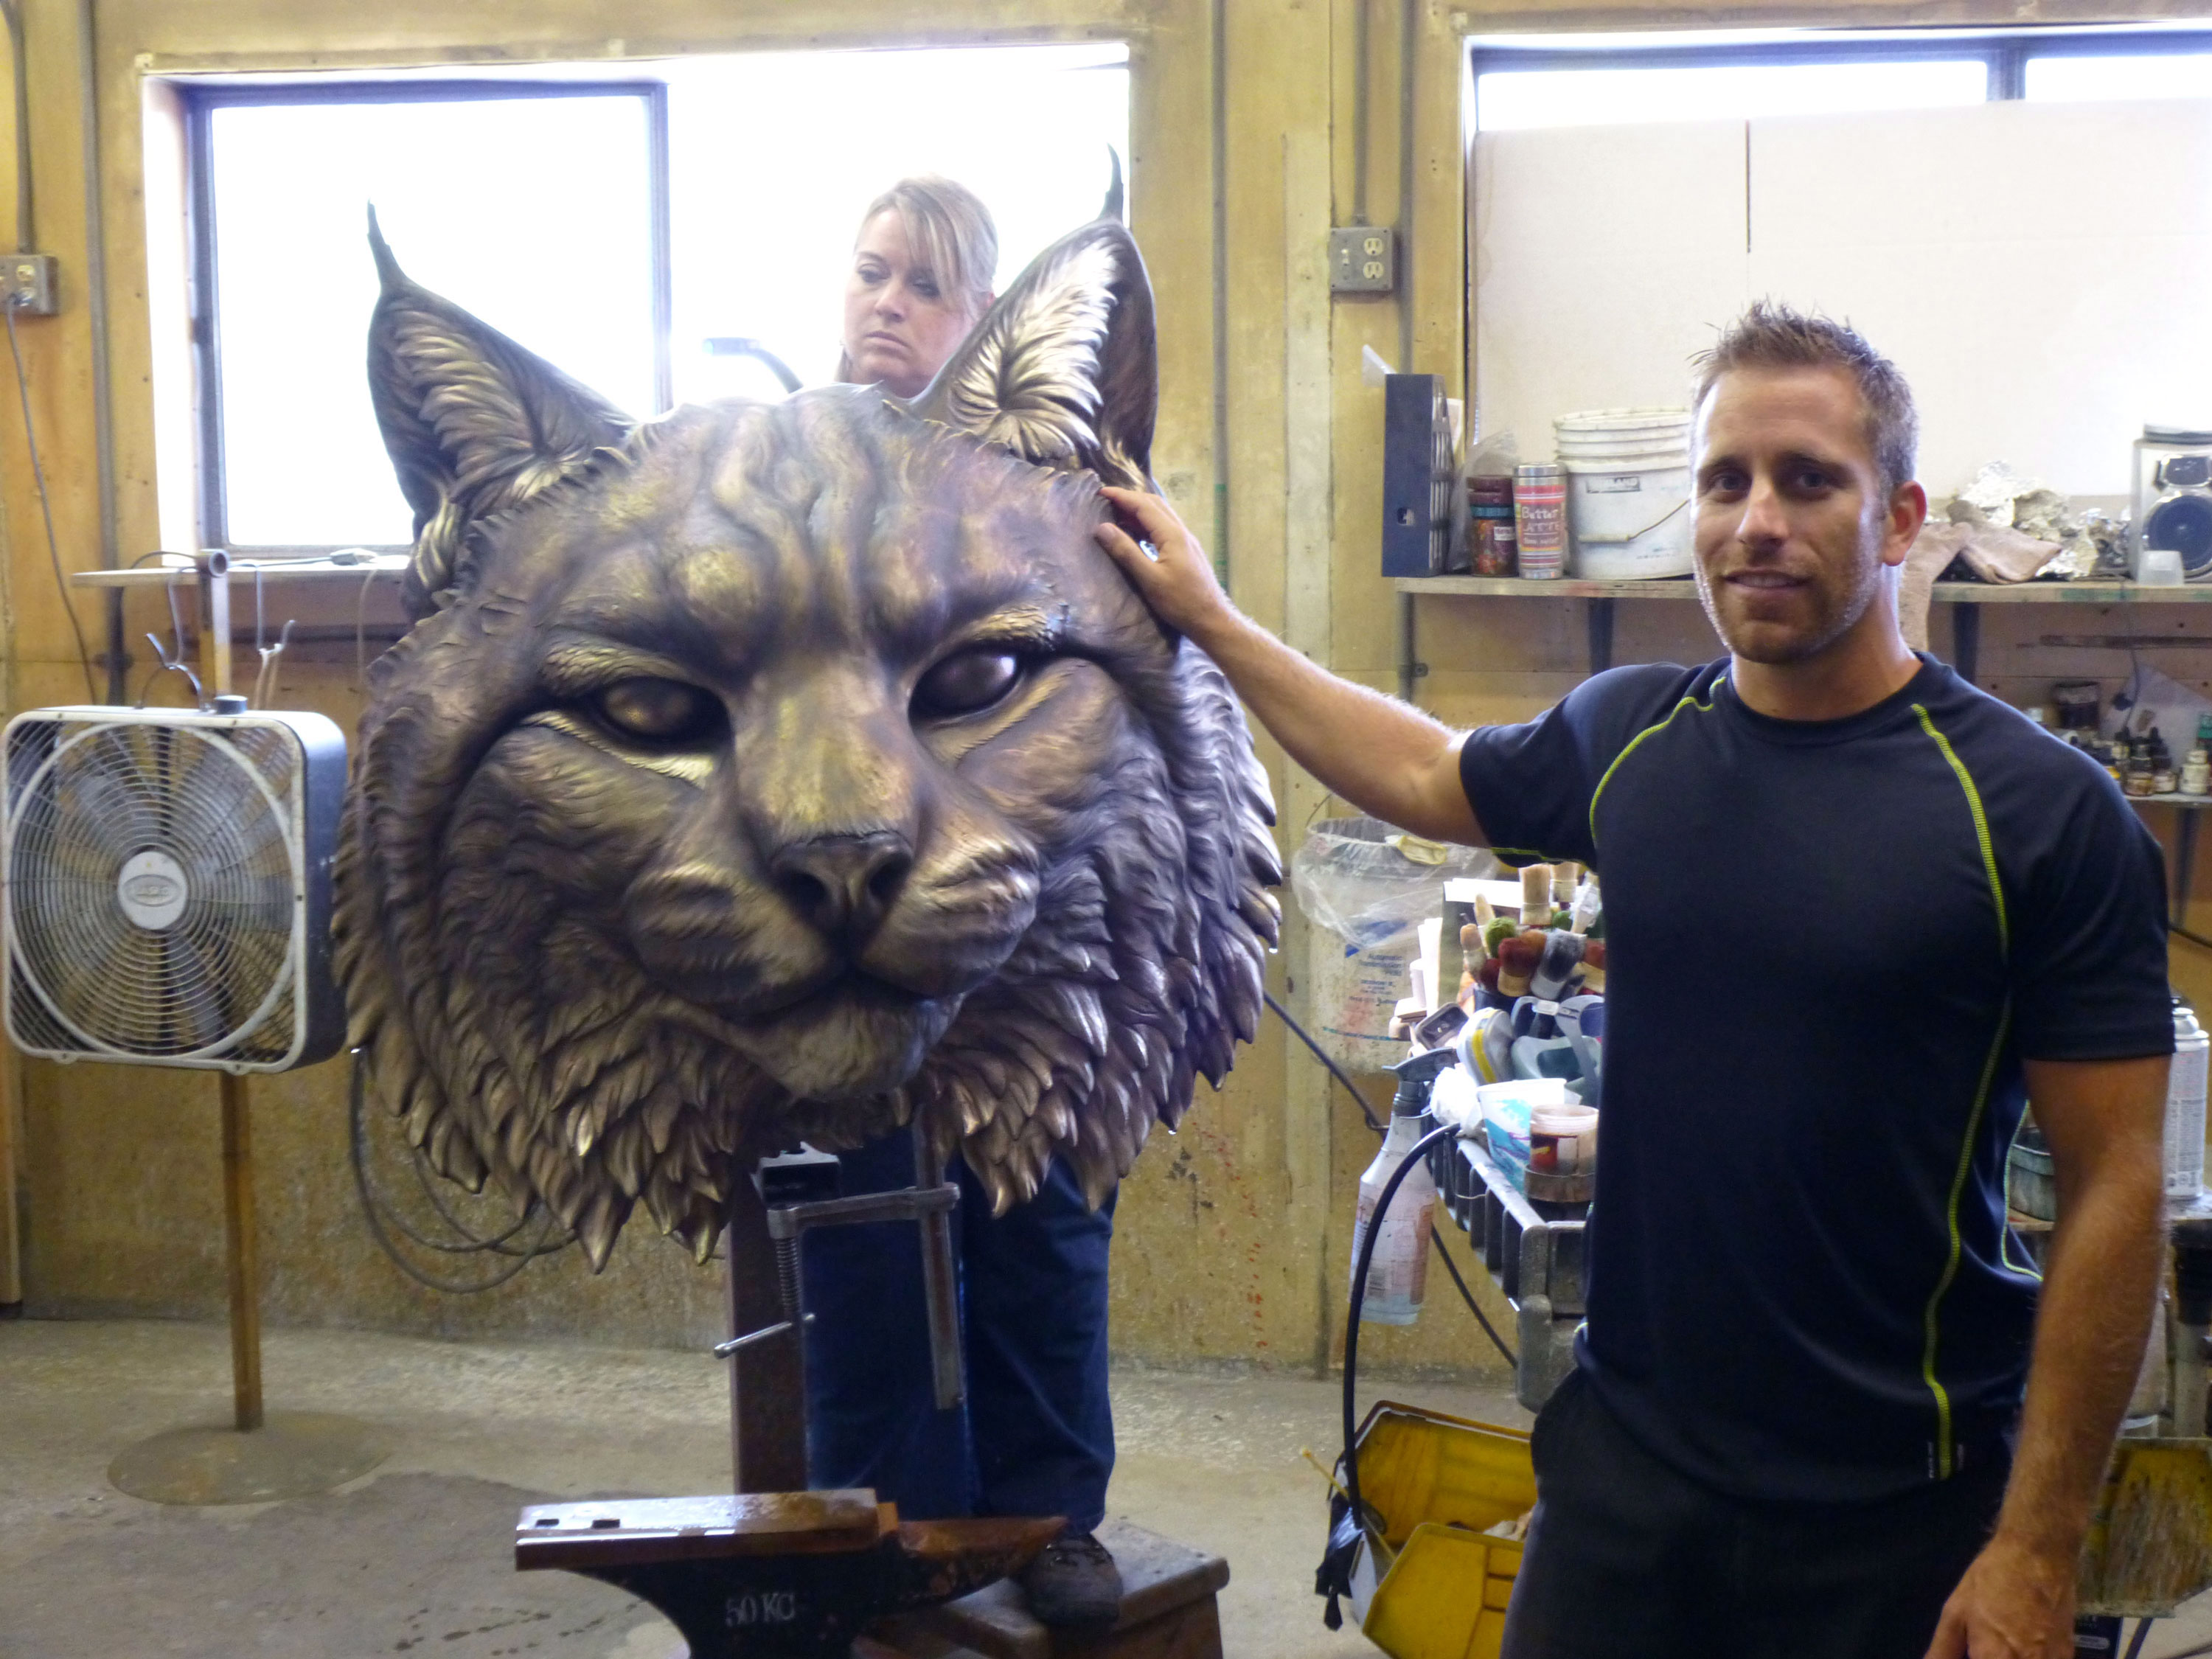 University-Wildcat-Sculpture-Mascot